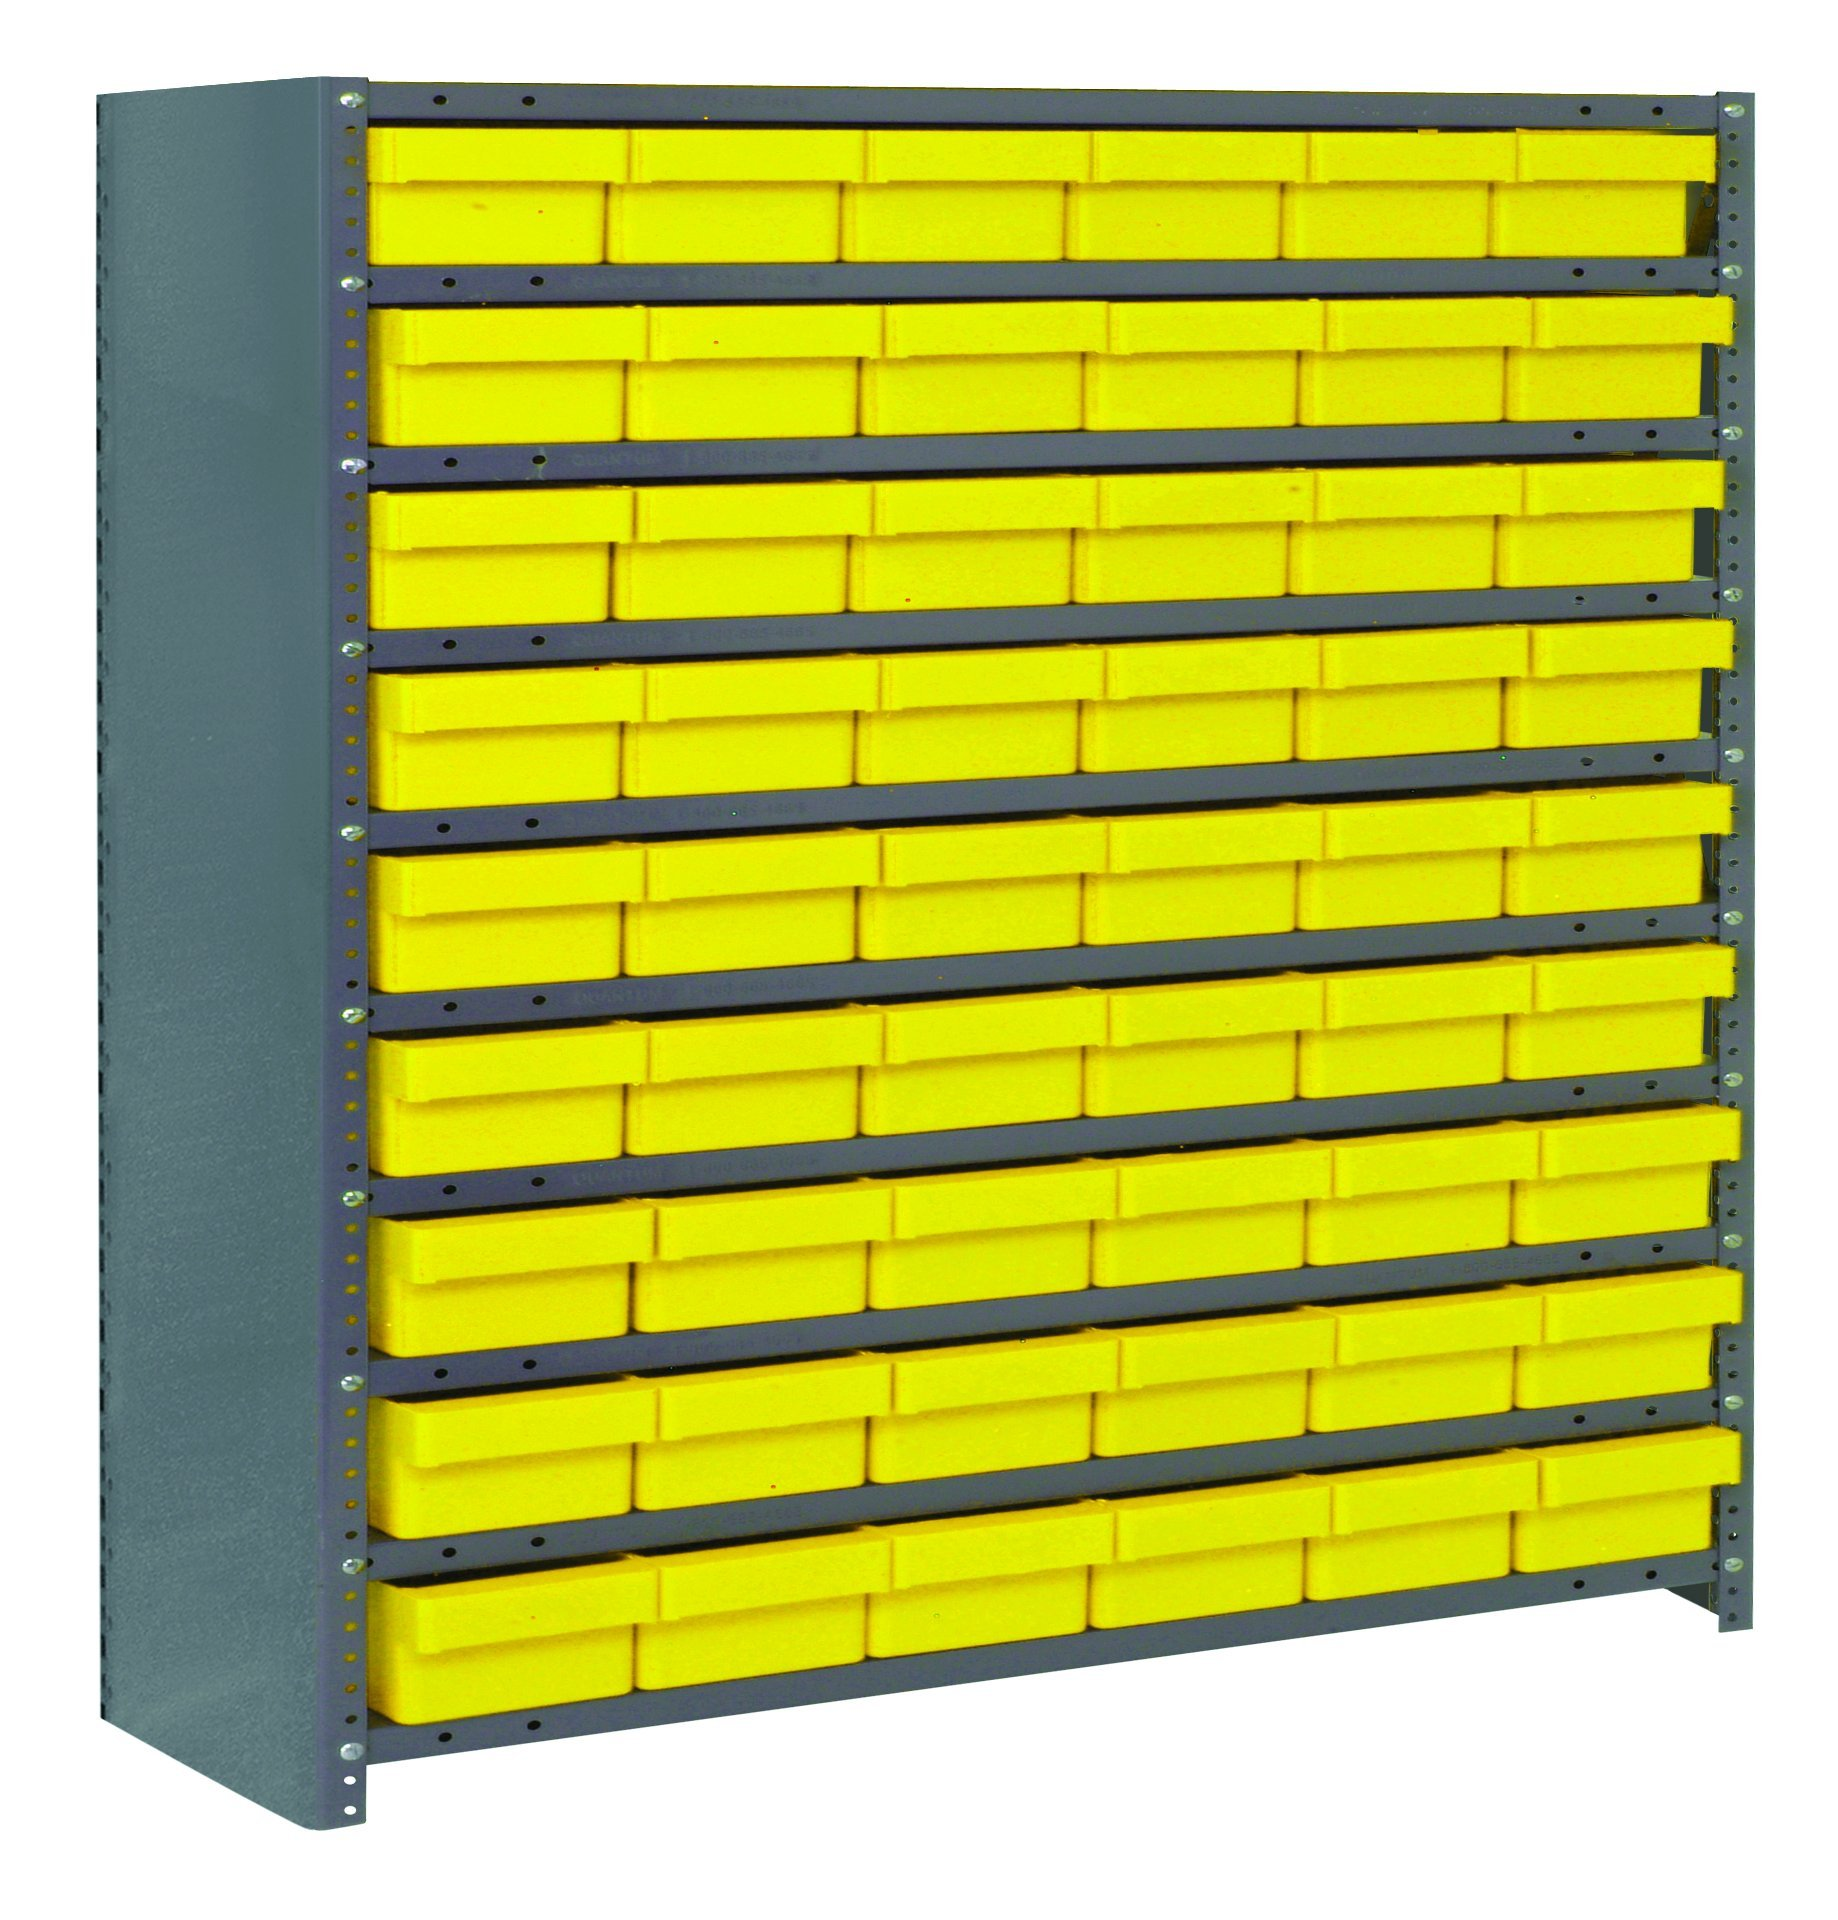 Quantum Storage Systems CL1239-401YL Closed Shelving System with Super Tuff Euro Drawers, 54 QED401 Shelf Bins, 12'' D x 36'' W x 39'' H, Yellow